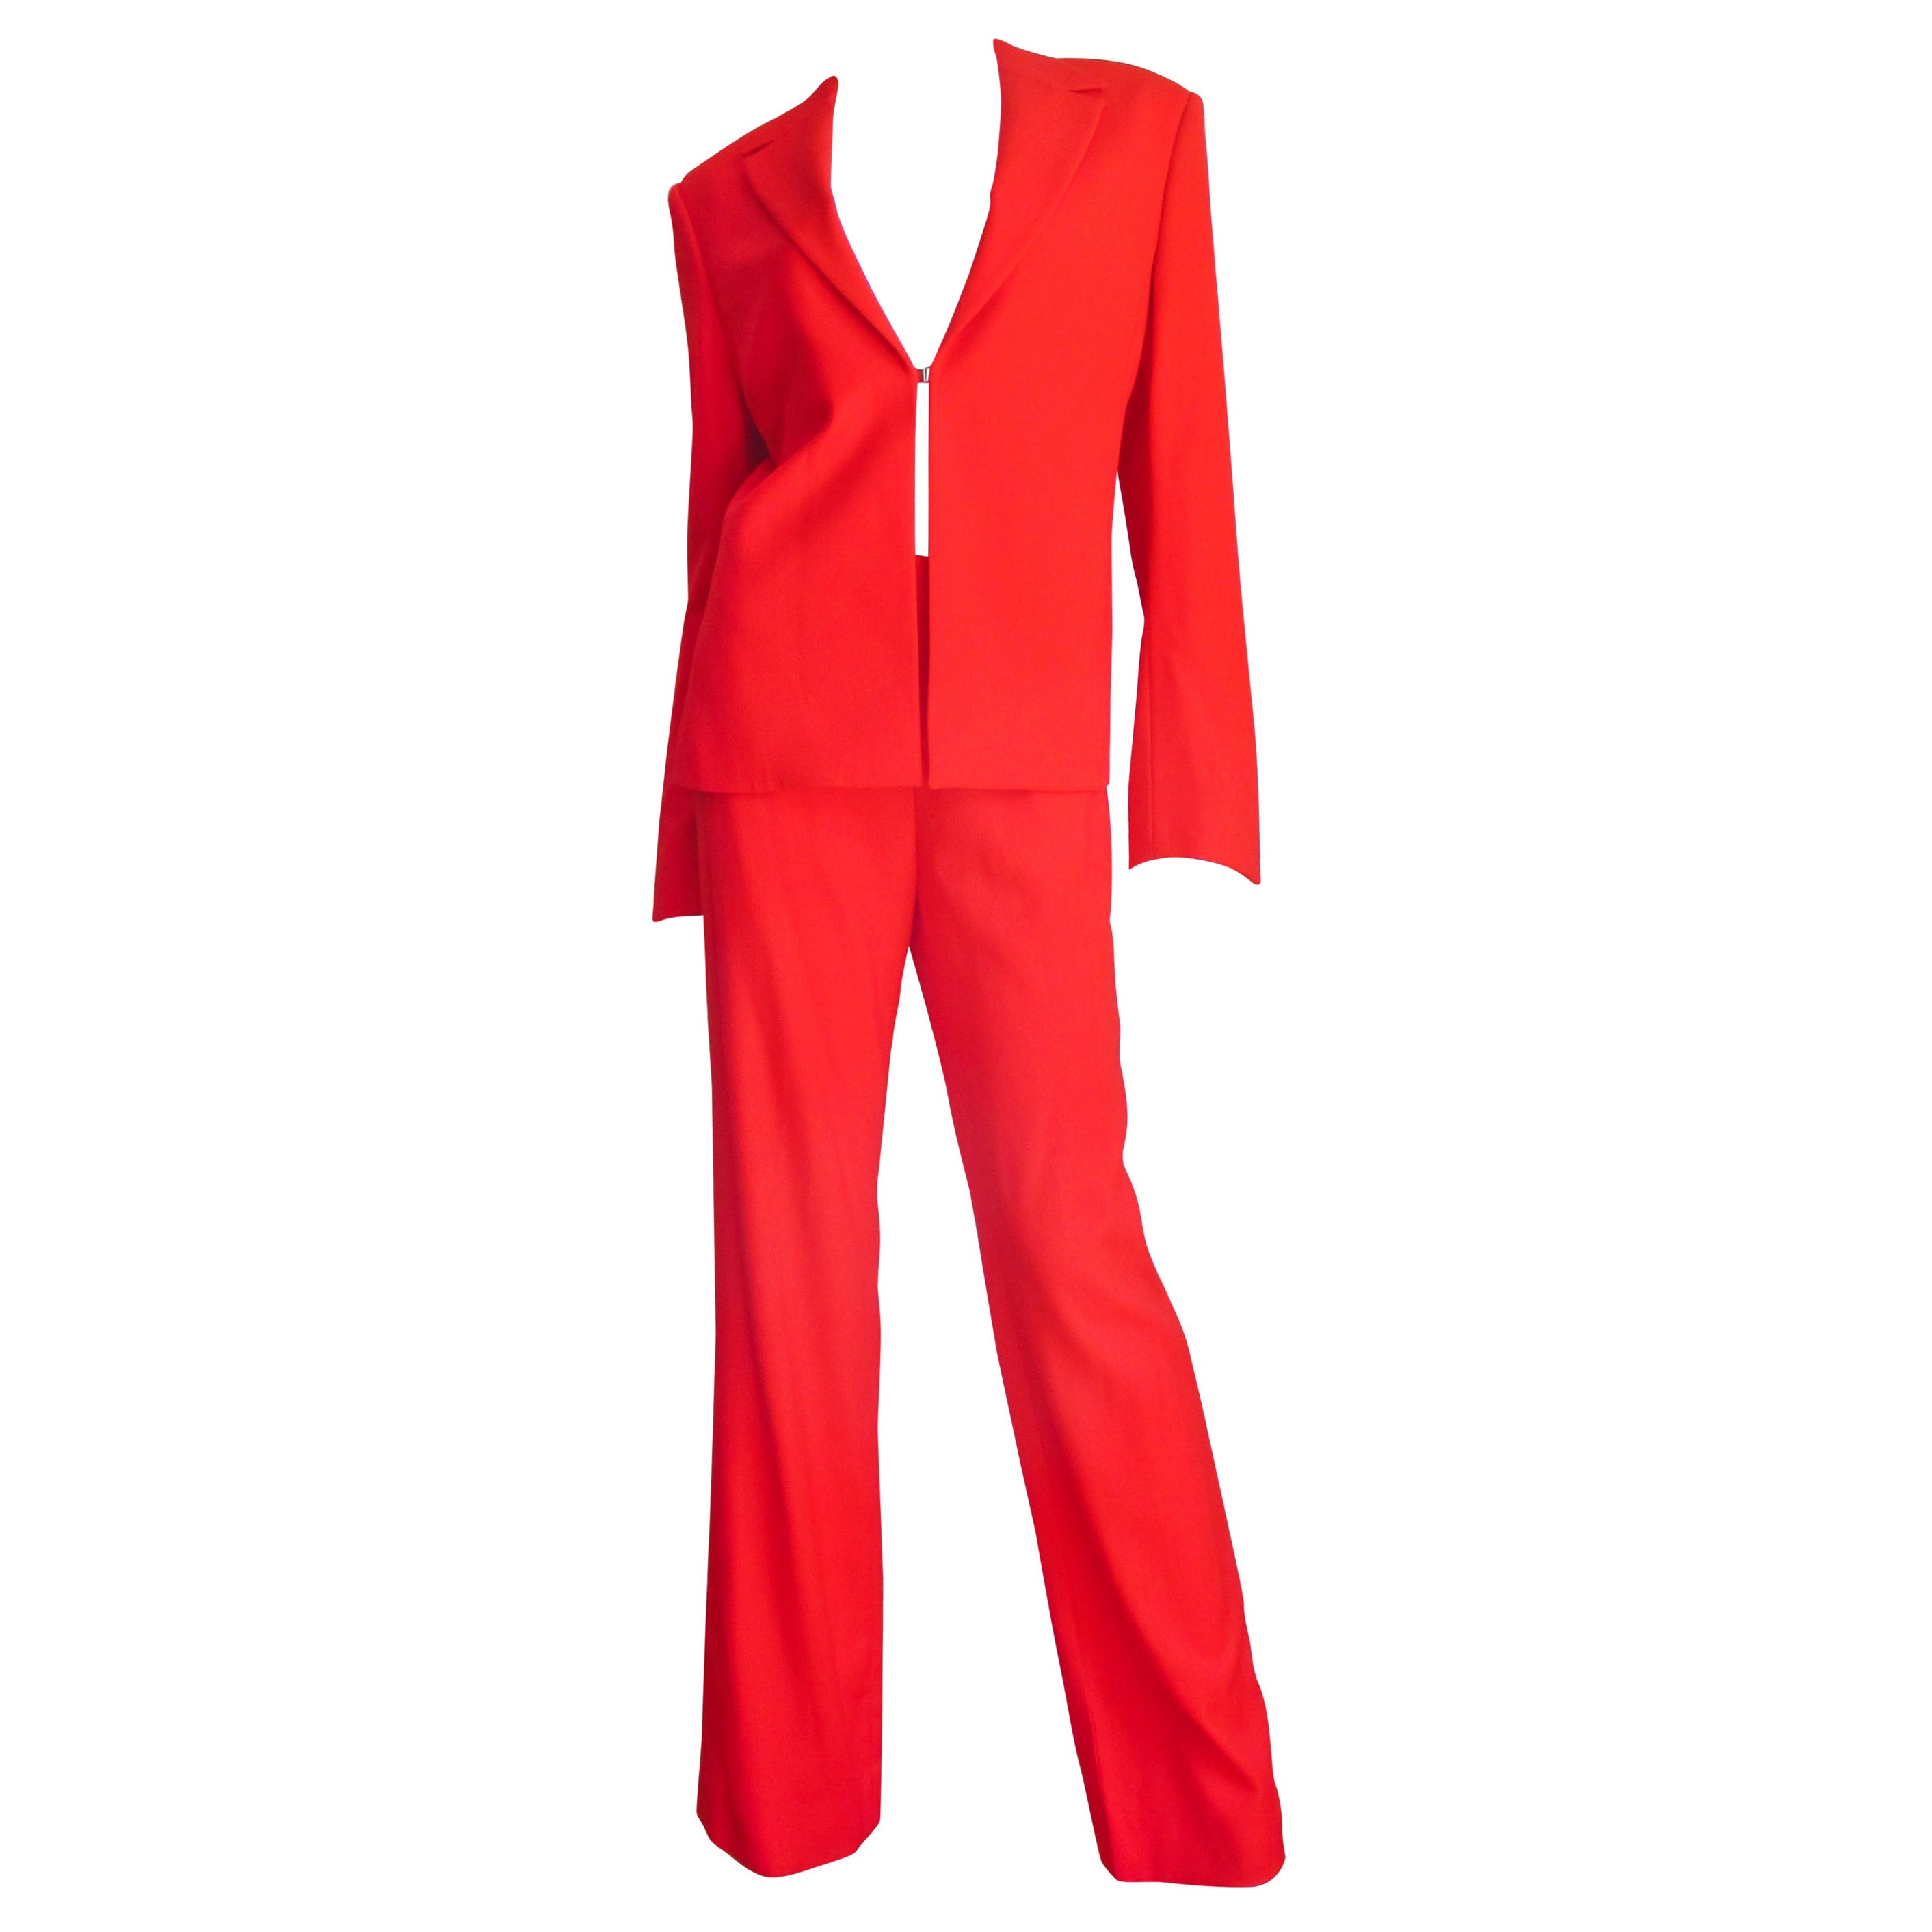 Gianni Versace Couture New Jacket and Pants Suit 1990s